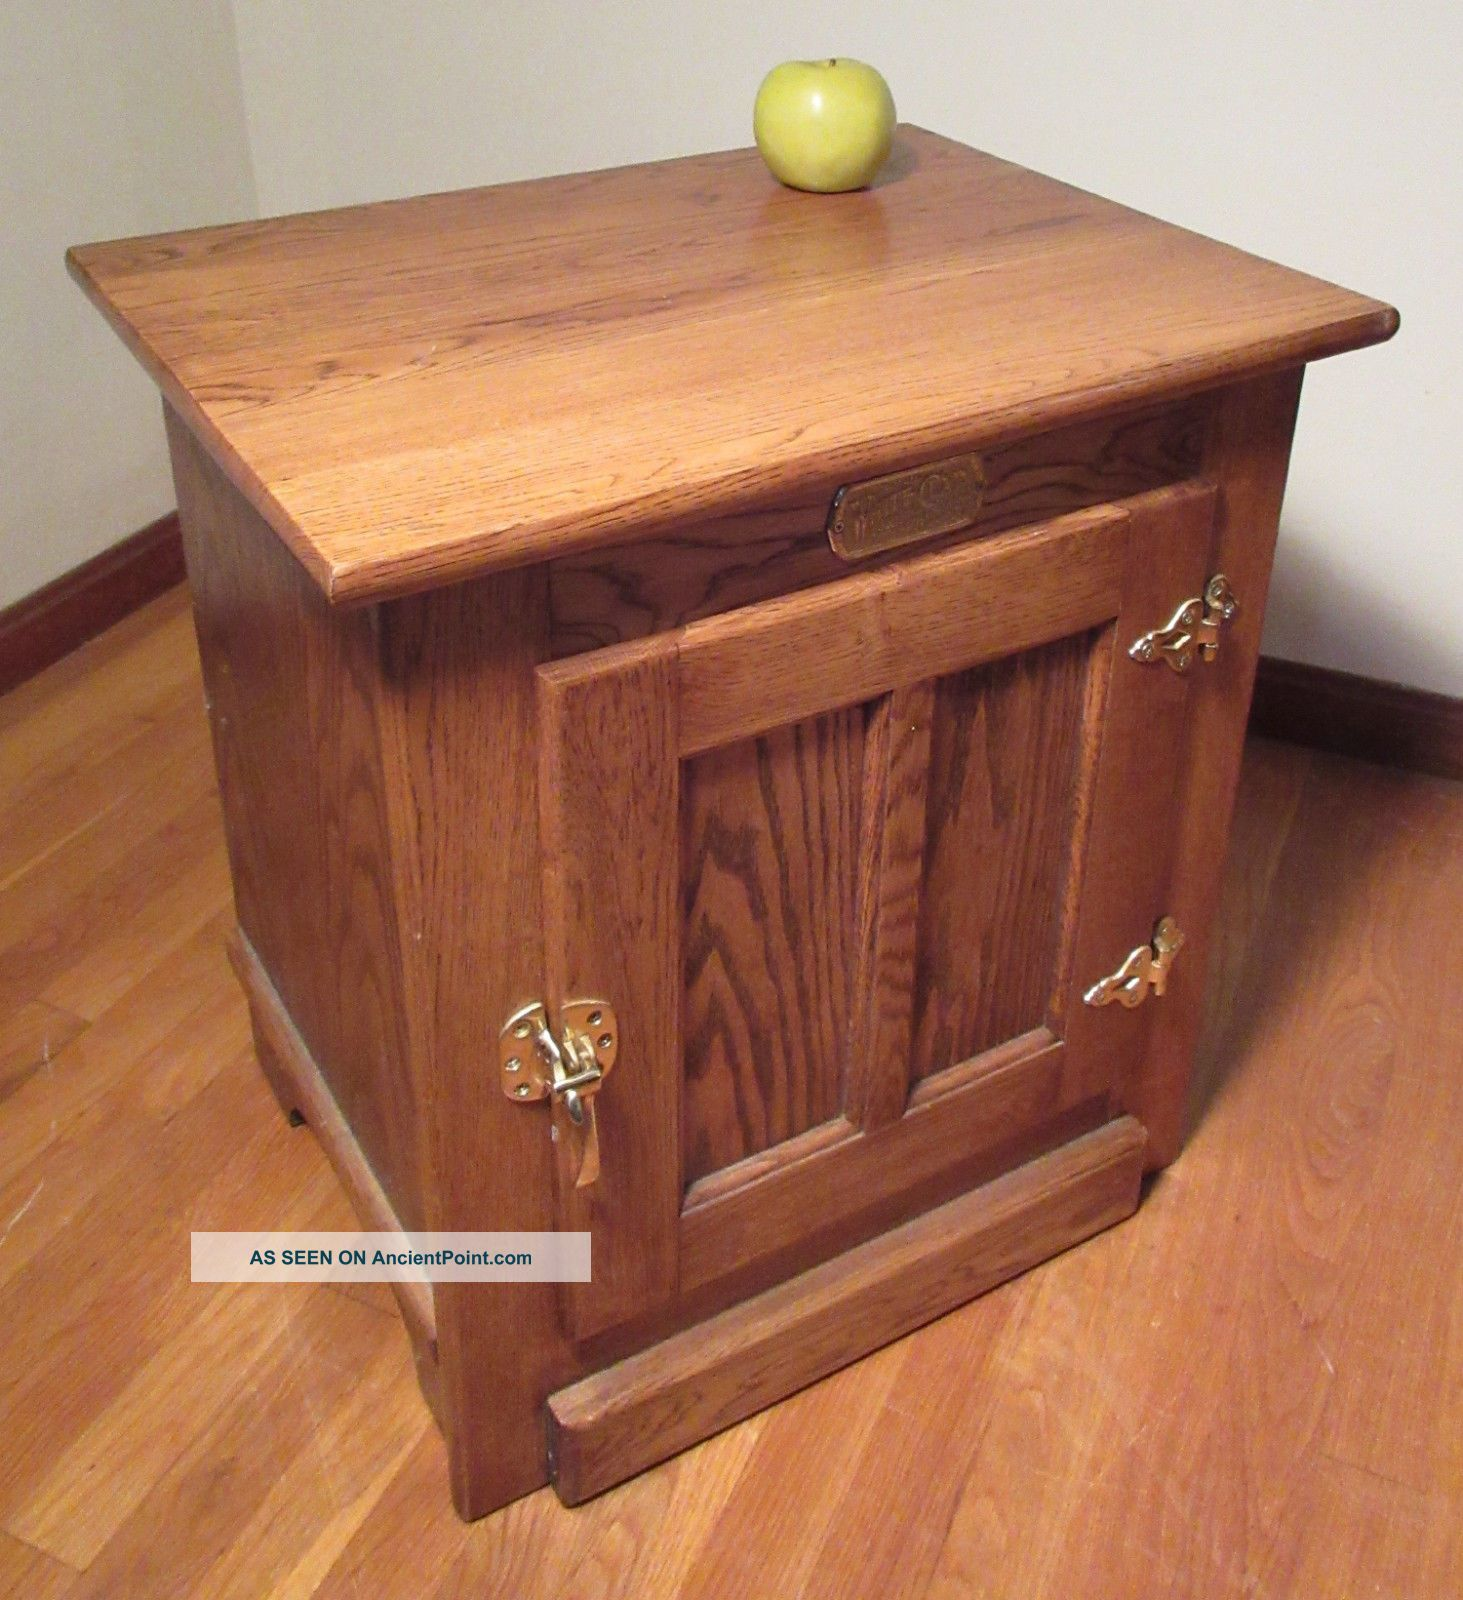 Amish Made Solid Oak White Clad Icebox Cabinet End Table W/brass Hardware Ice Boxes photo